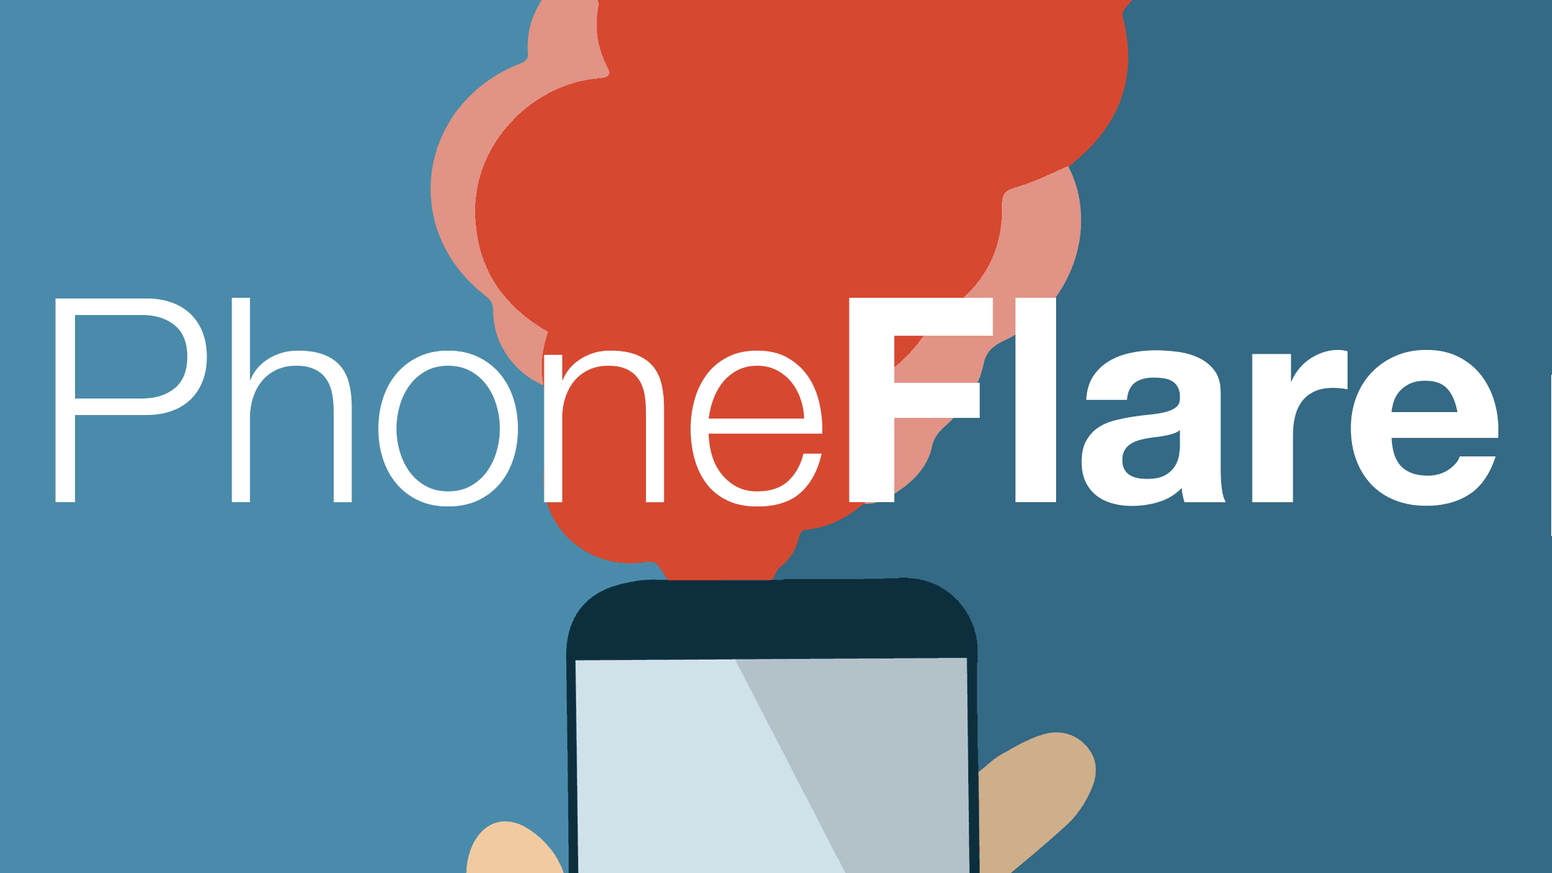 PhoneFlare: A Campus Safety App by Christopher Jarvis